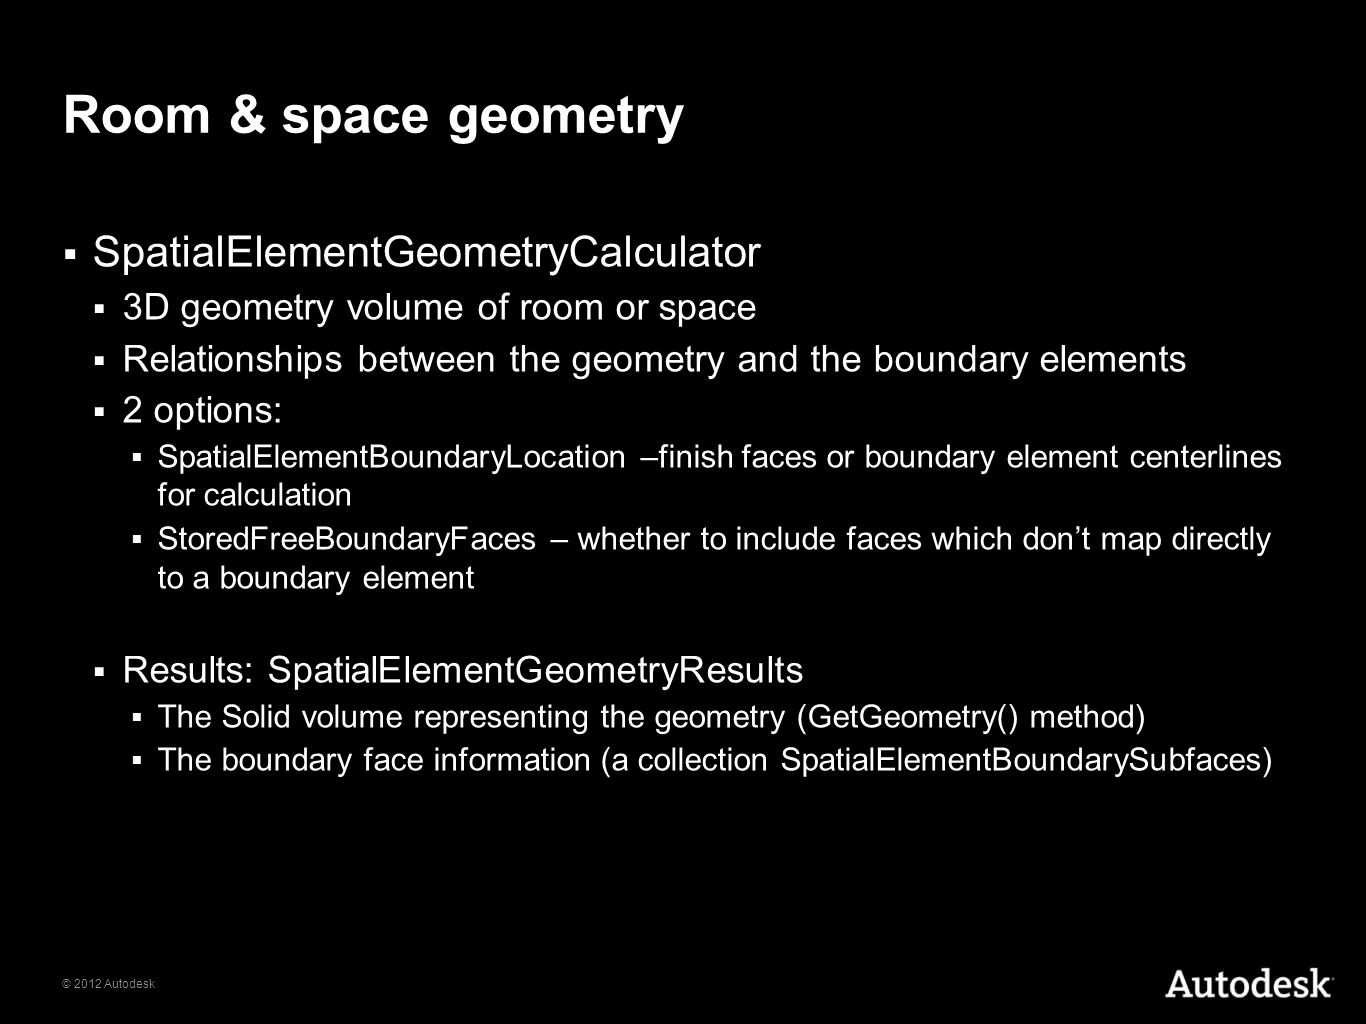 Room & space geometry SpatialElementGeometryCalculator